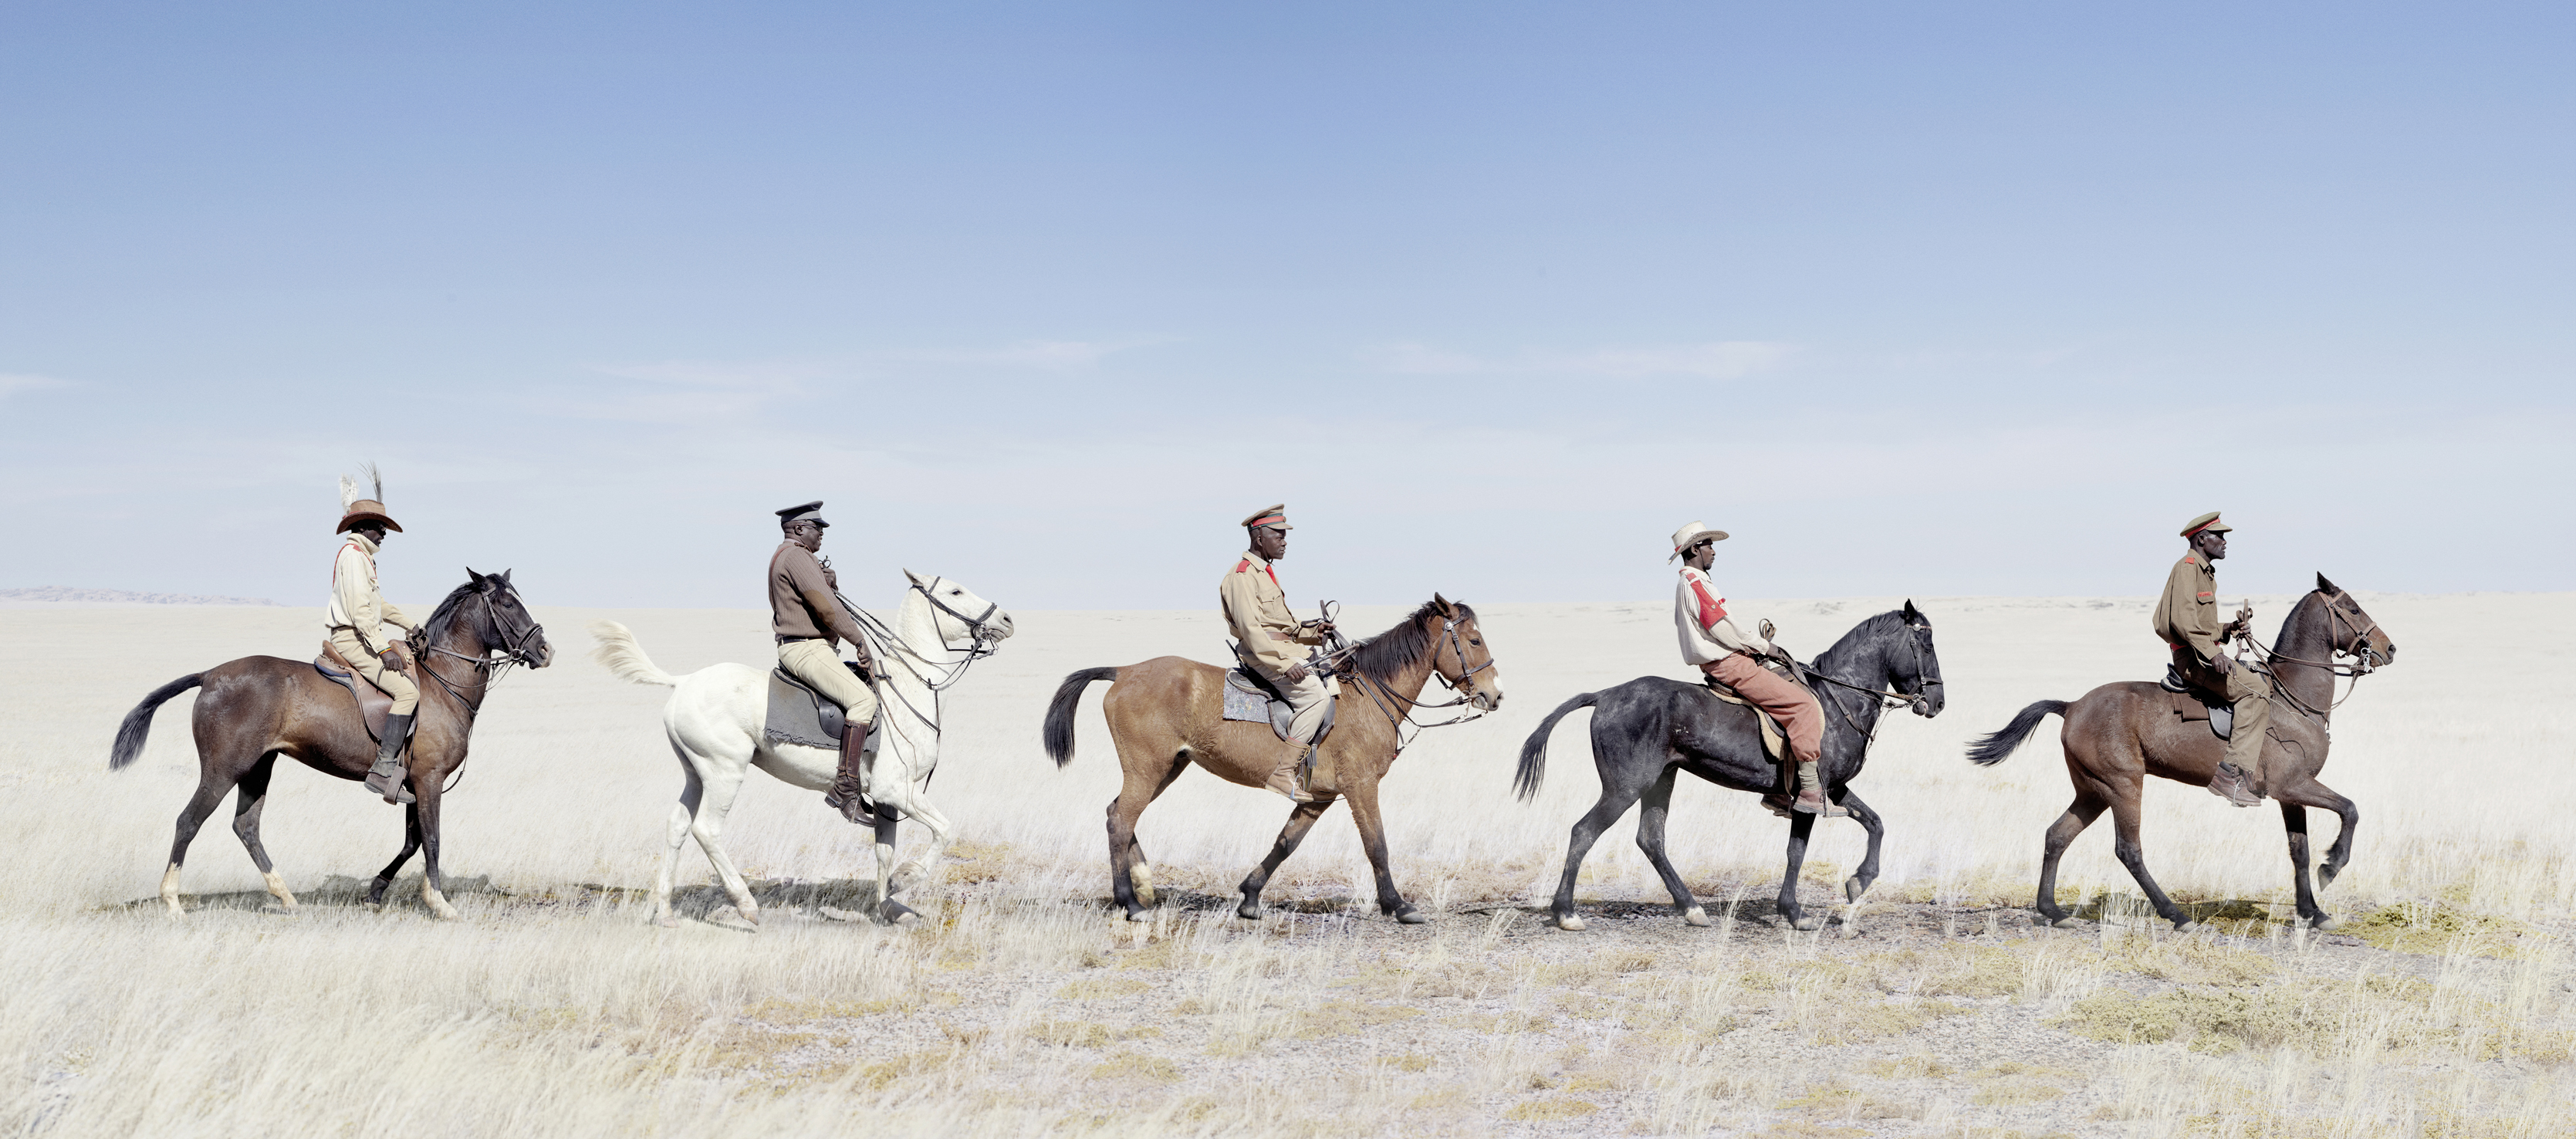 A group of Otruppe cavalrymen on horseback. Equestrian displays can be seen at festivals and ceremonies such as Herero Day.